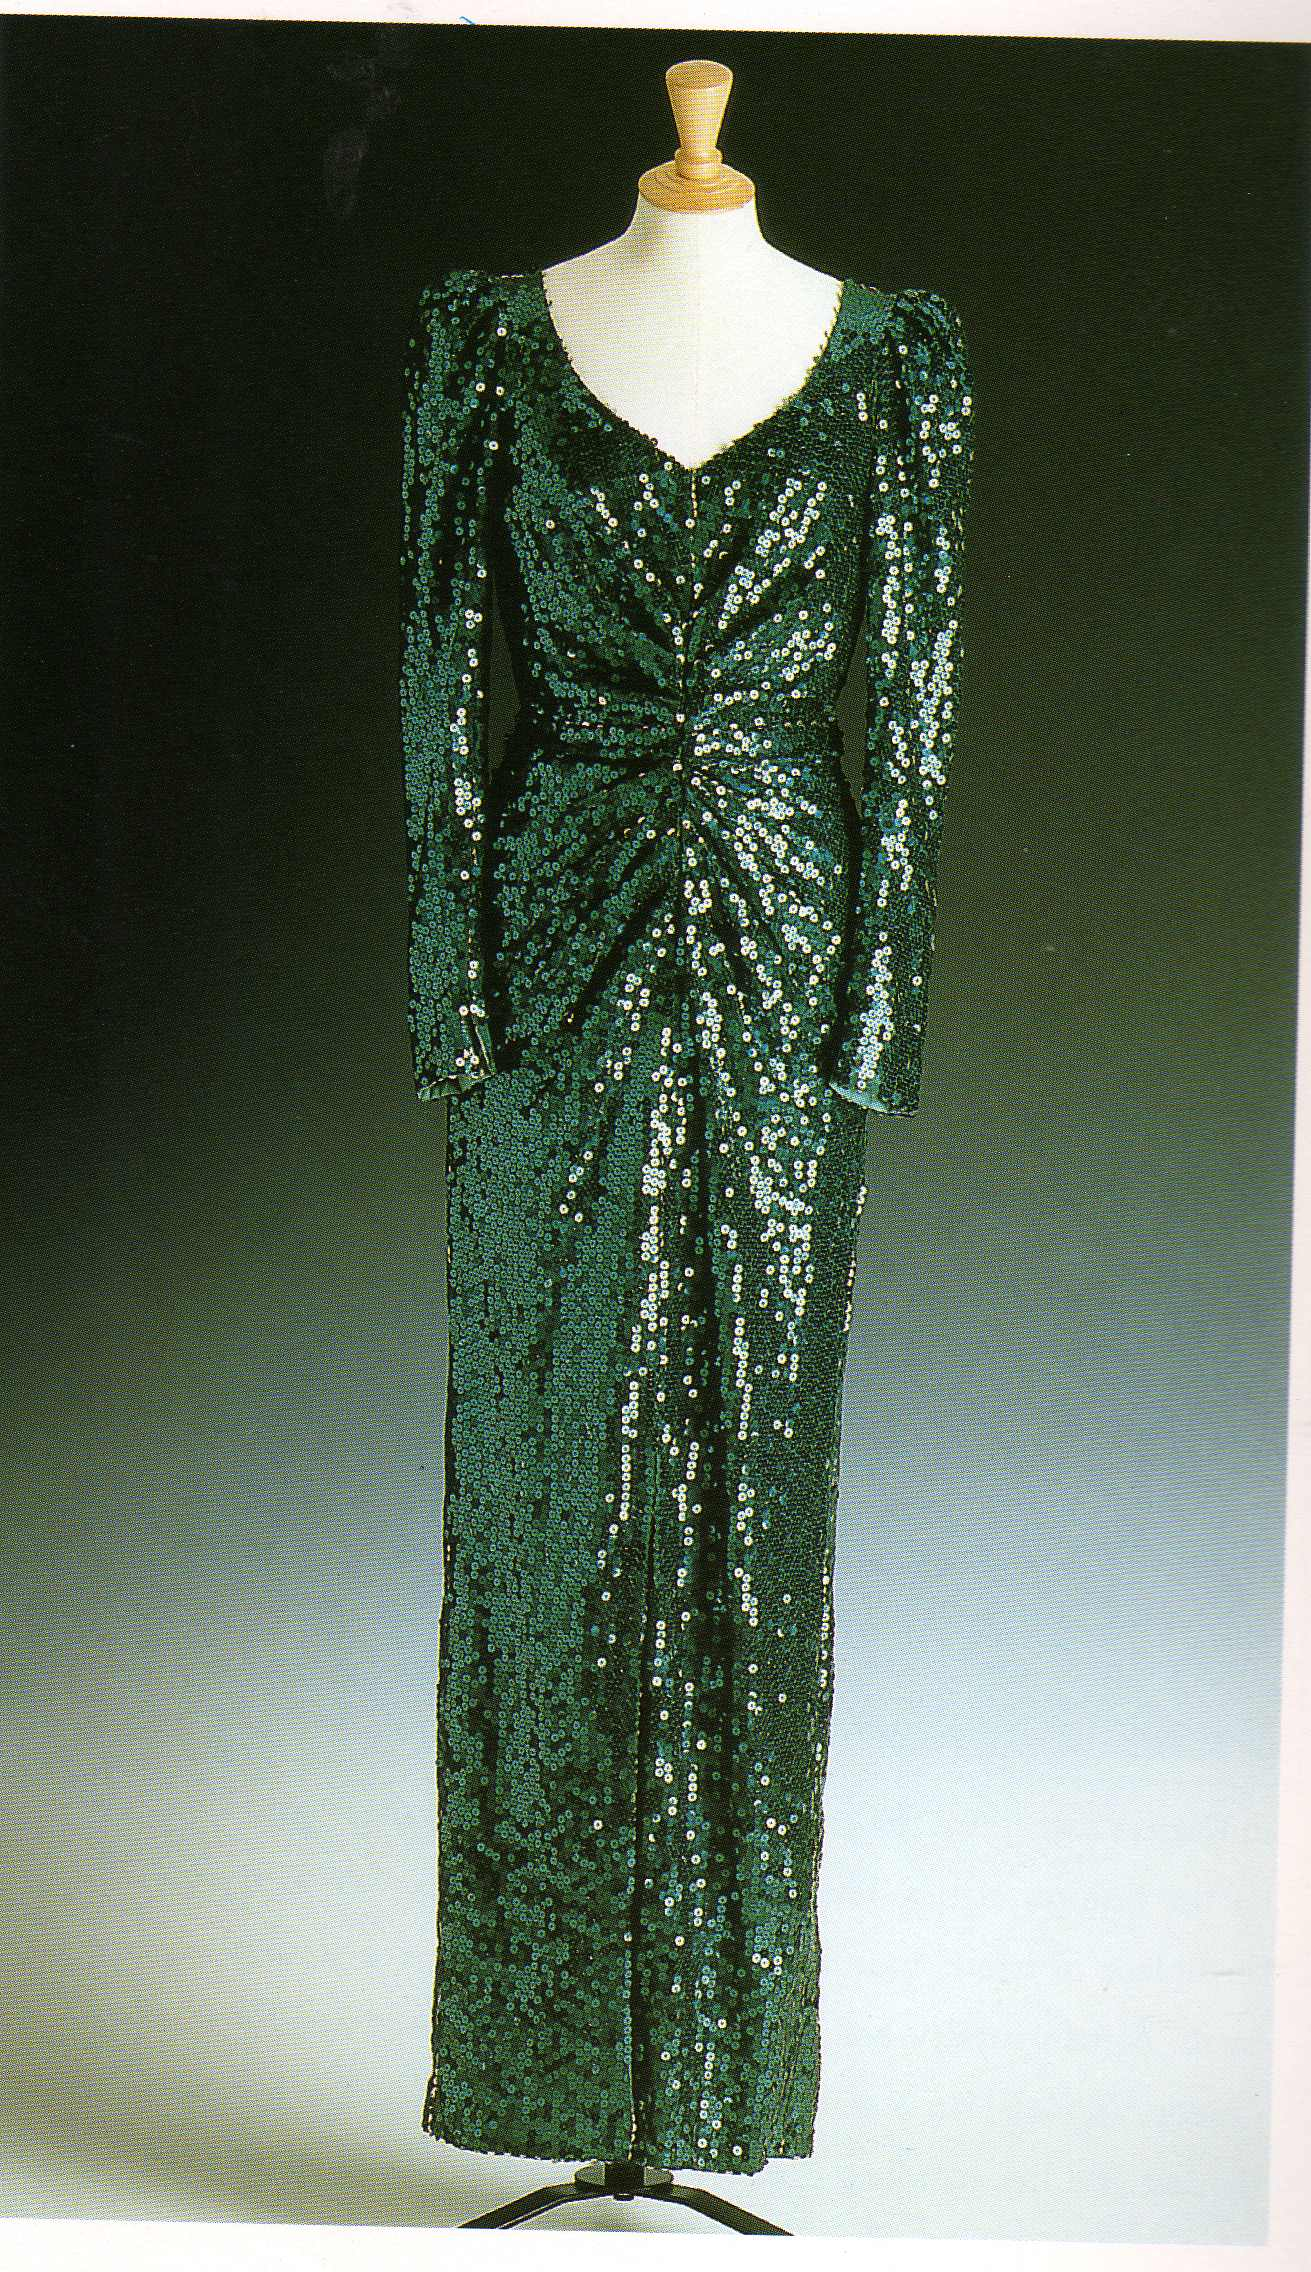 Mermaid Dress: Petrol Green sequin gown by Catherine Walker 1986 ...